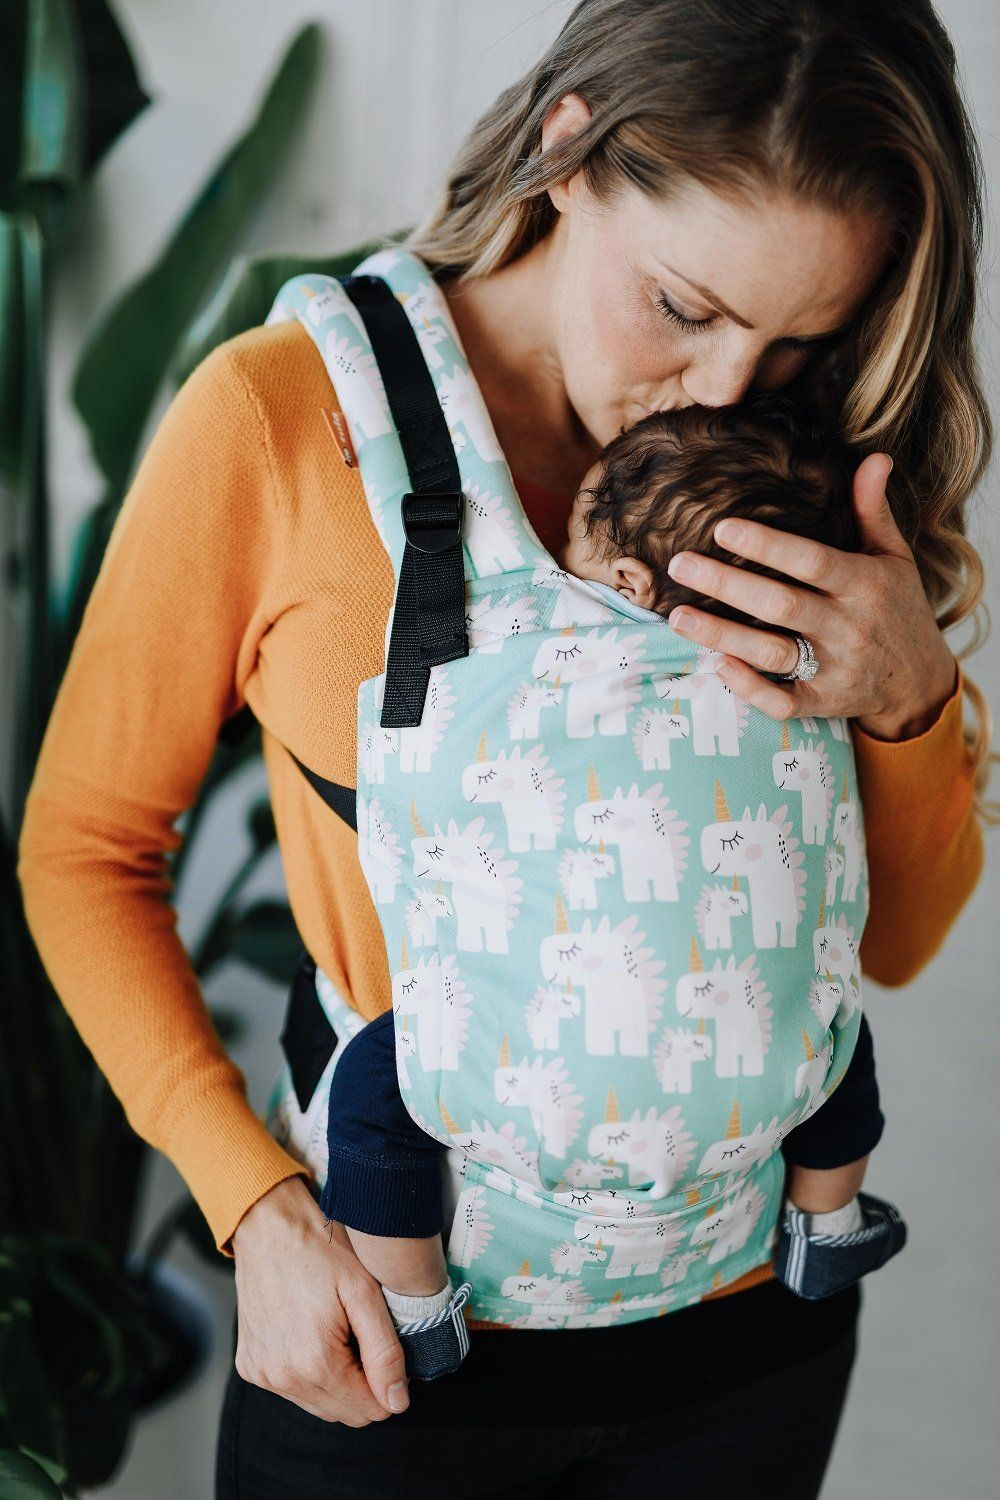 b9052620d7d Unisaurus - Tula Free-to-Grow Baby Carrier - Baby Tula. Meet sweet little  buddies from a not-quite prehistoric place. Unisaurus is a unique take on  our ...